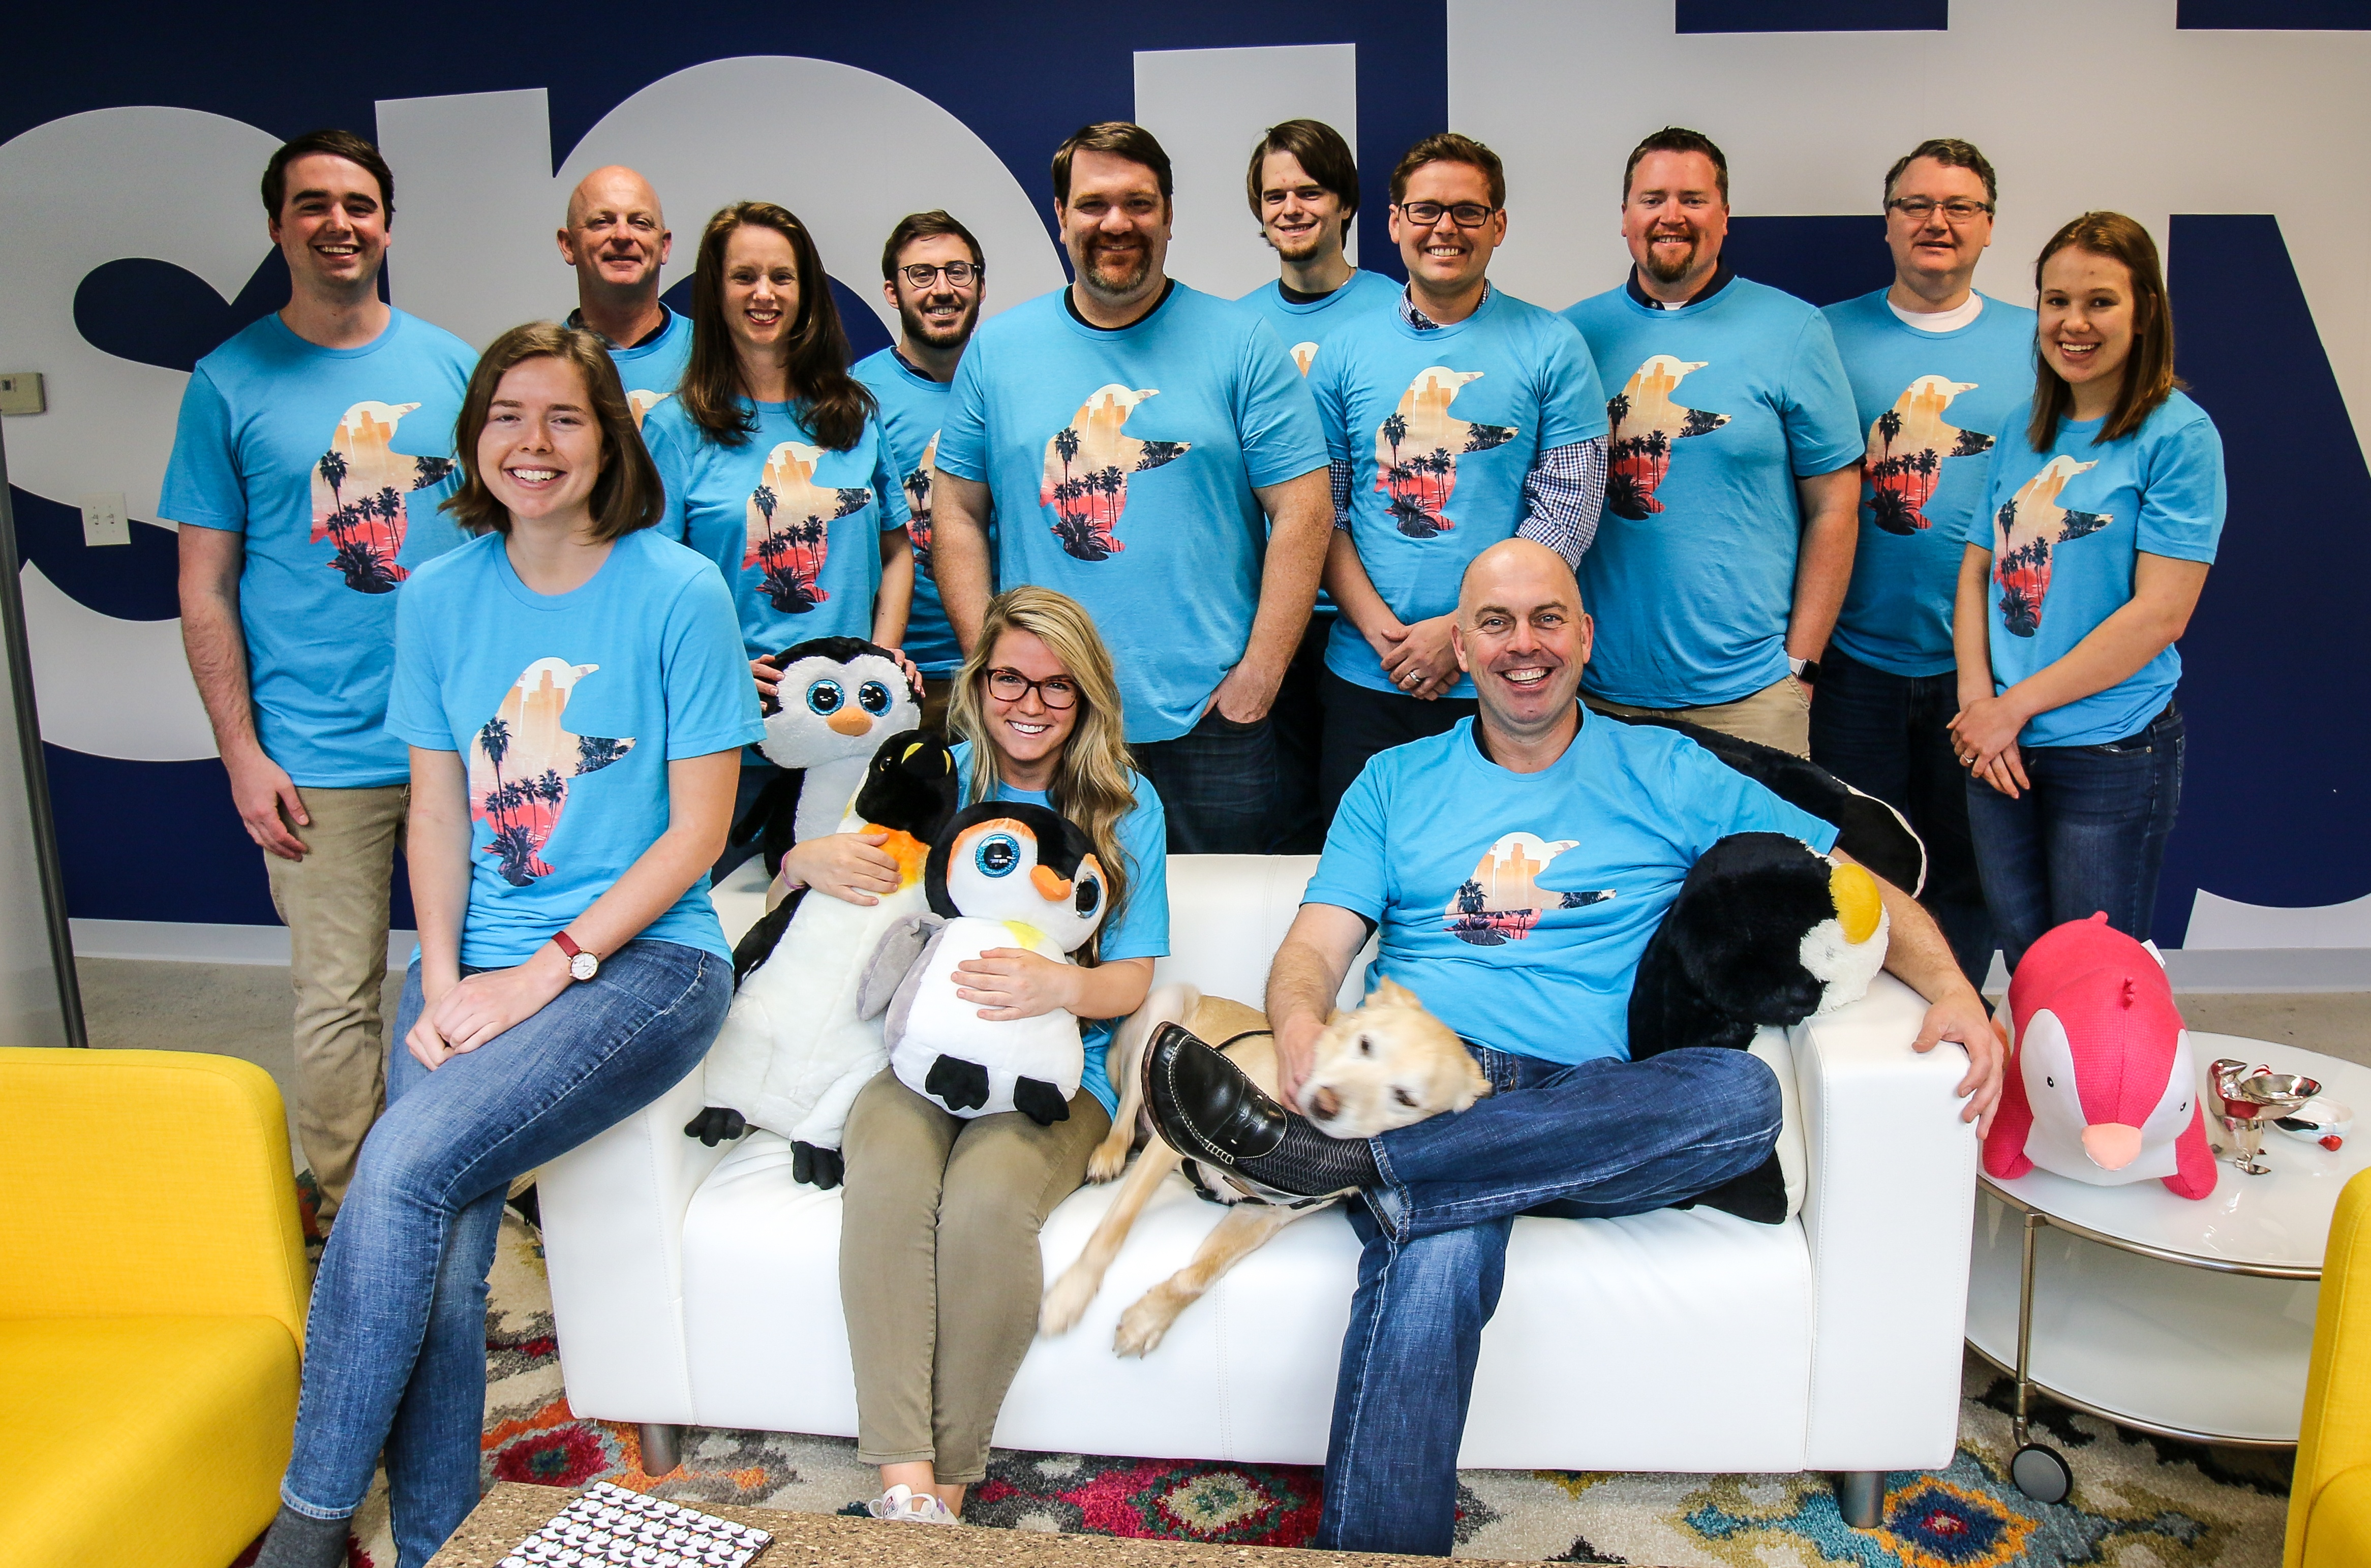 The Spiffy Team with Co founders Scot Wingo and Karl Murphy